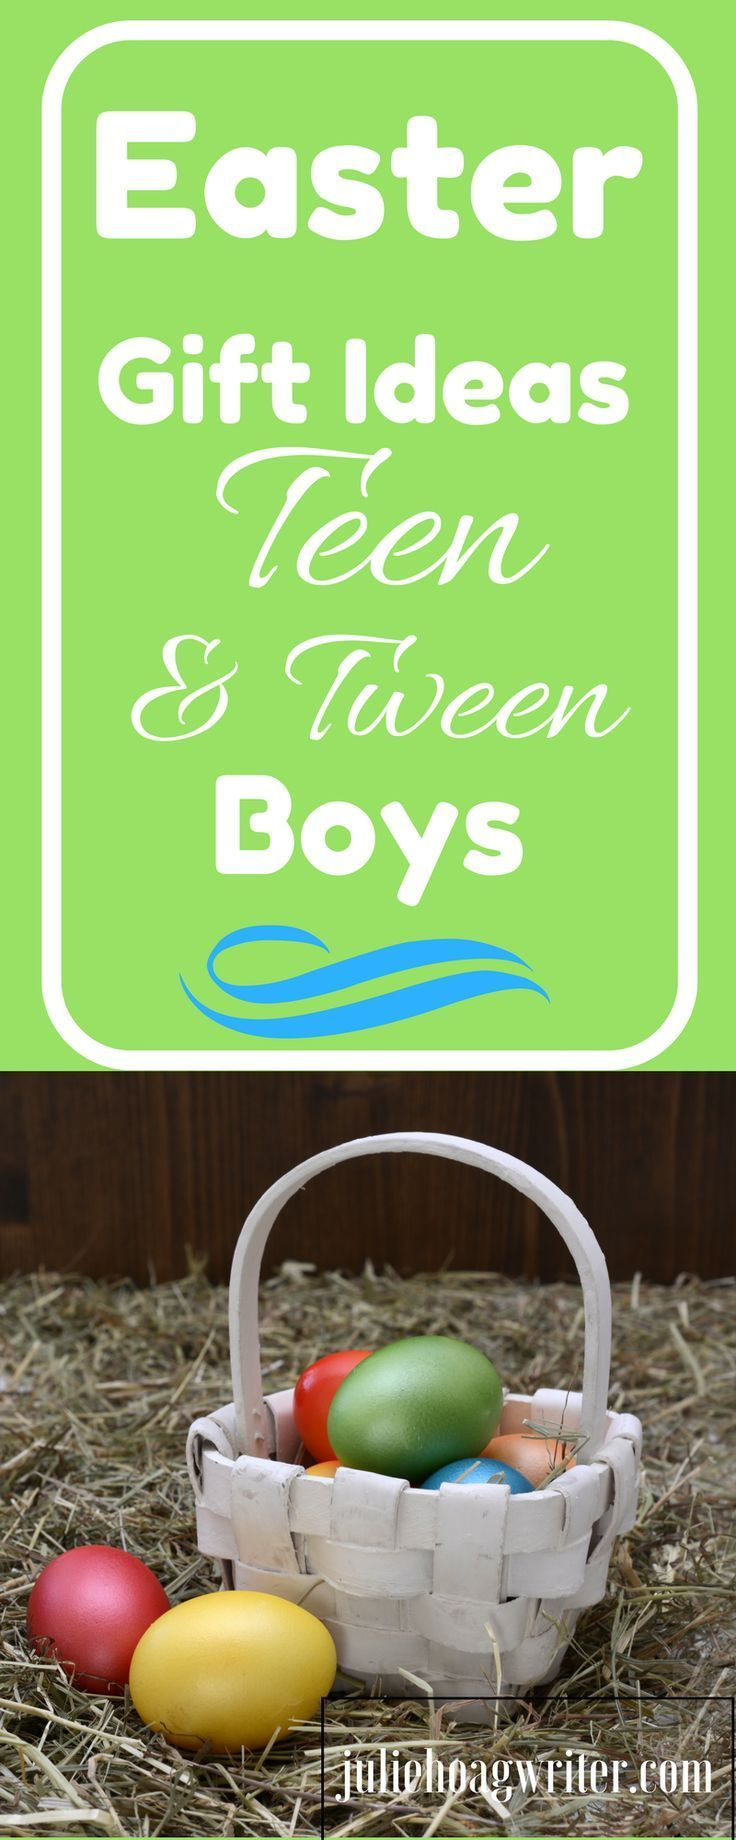 Easter gift ideas for teen and tween boys tween and easter negle Image collections